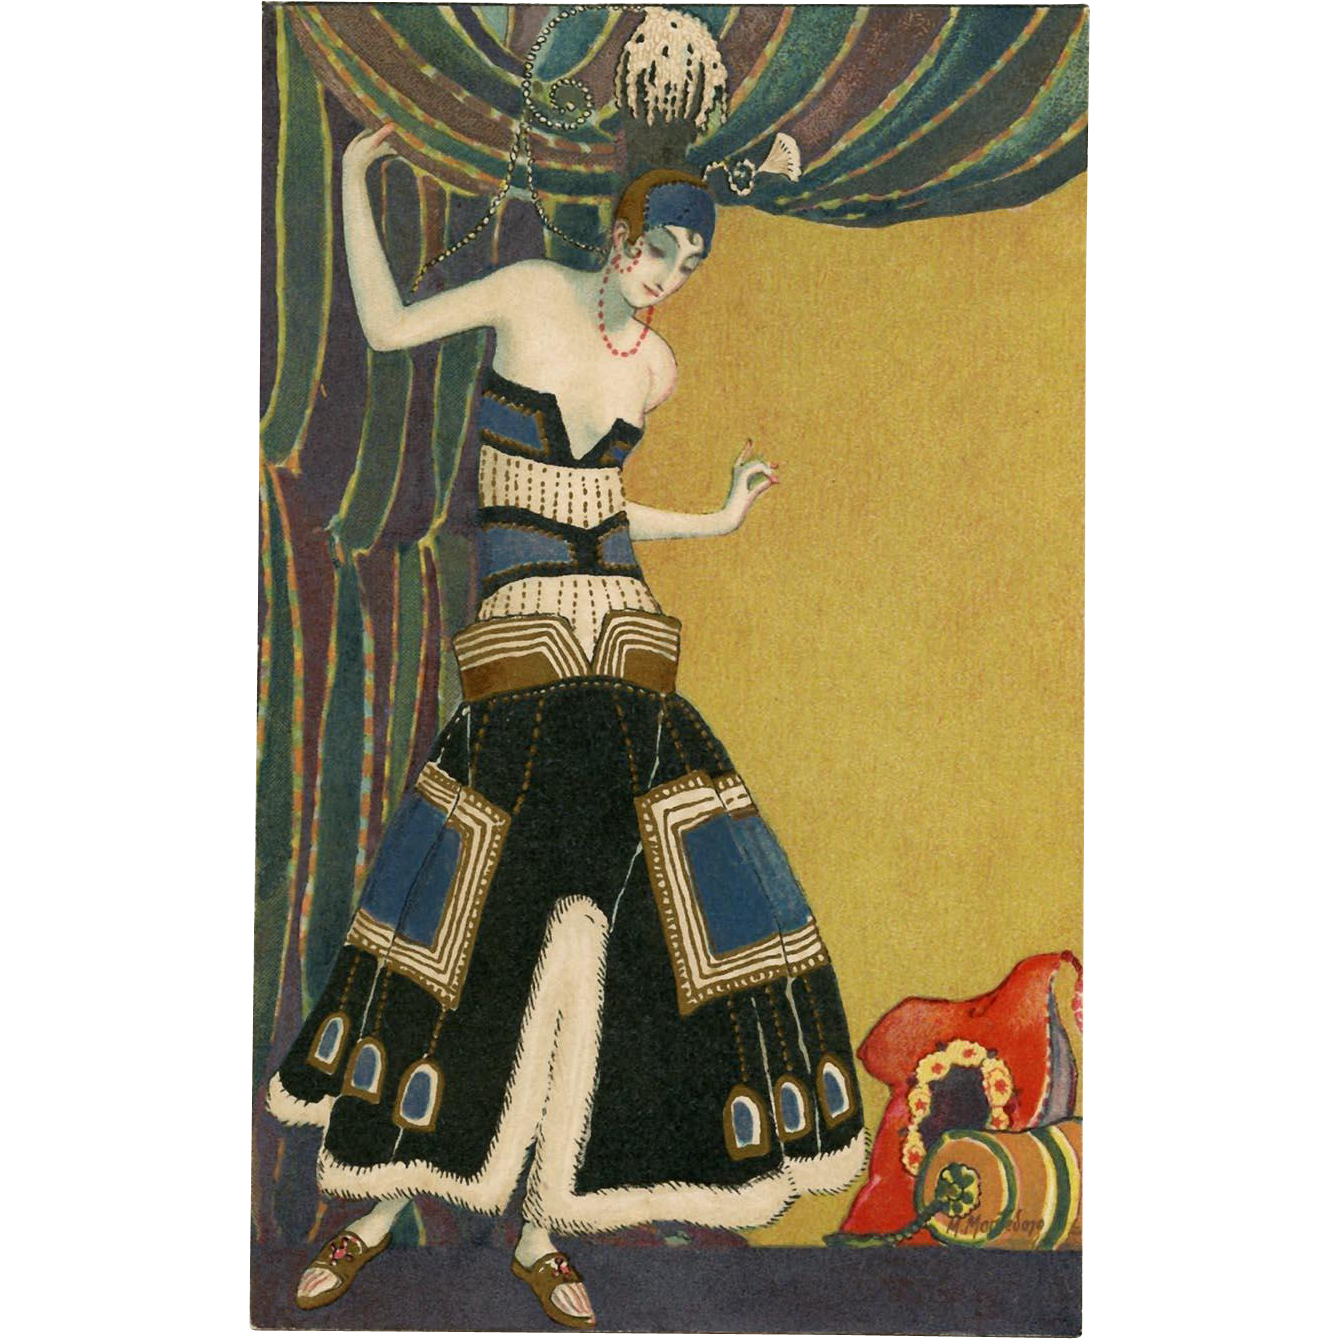 Art Deco Fashion Postcard by Italian Artist Marco Montedoro Metallic Gold Hand Detailing